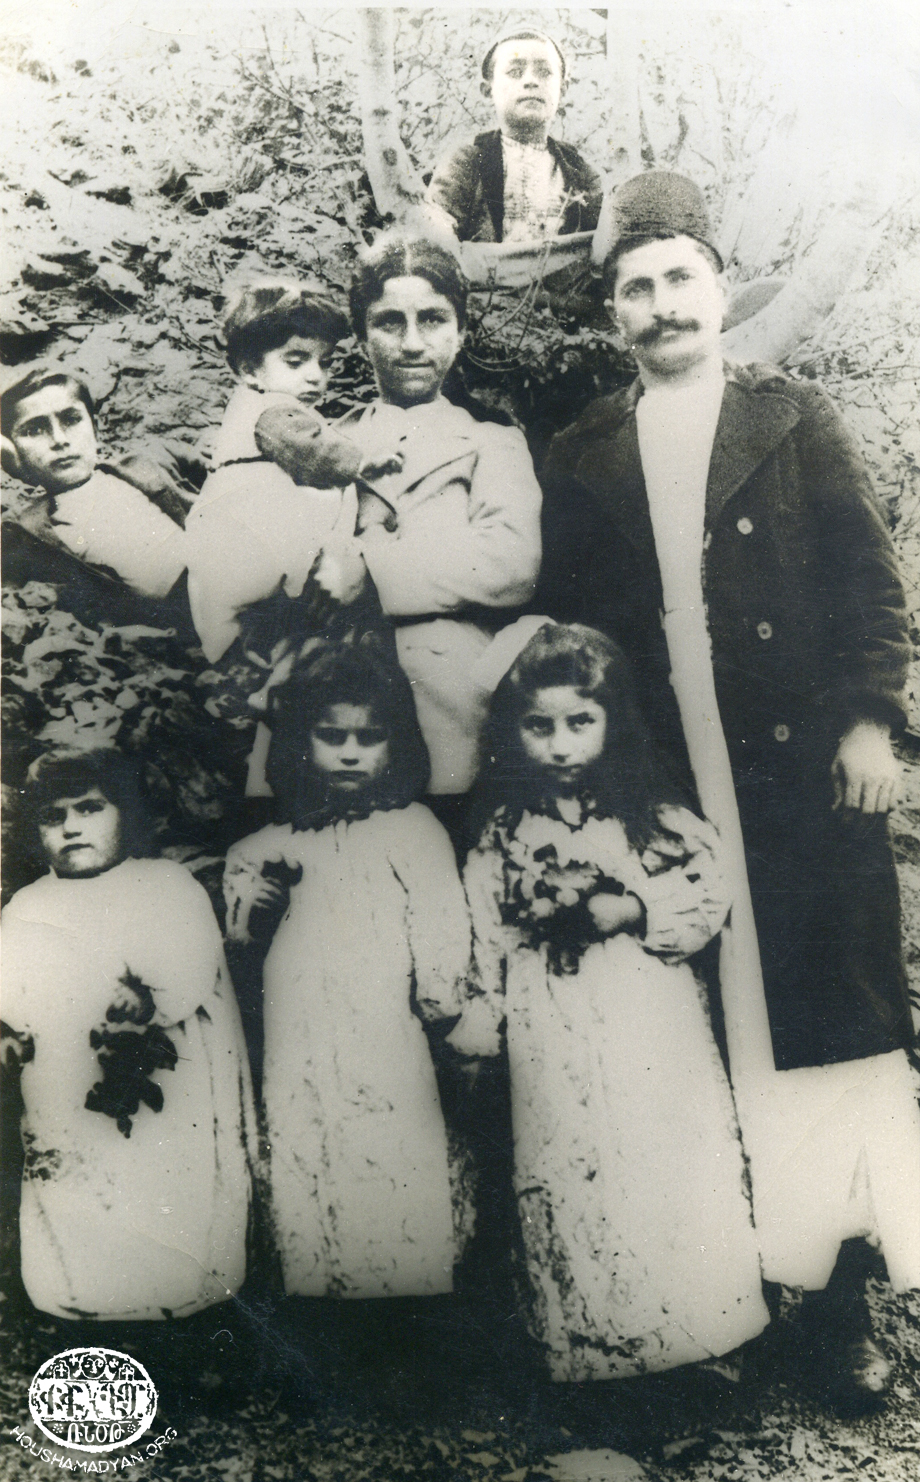 Sis - 1905 or 1906. The two adults standing in the photo are Hagop Giuliudjian and his wife Tskhiun Giuliujian